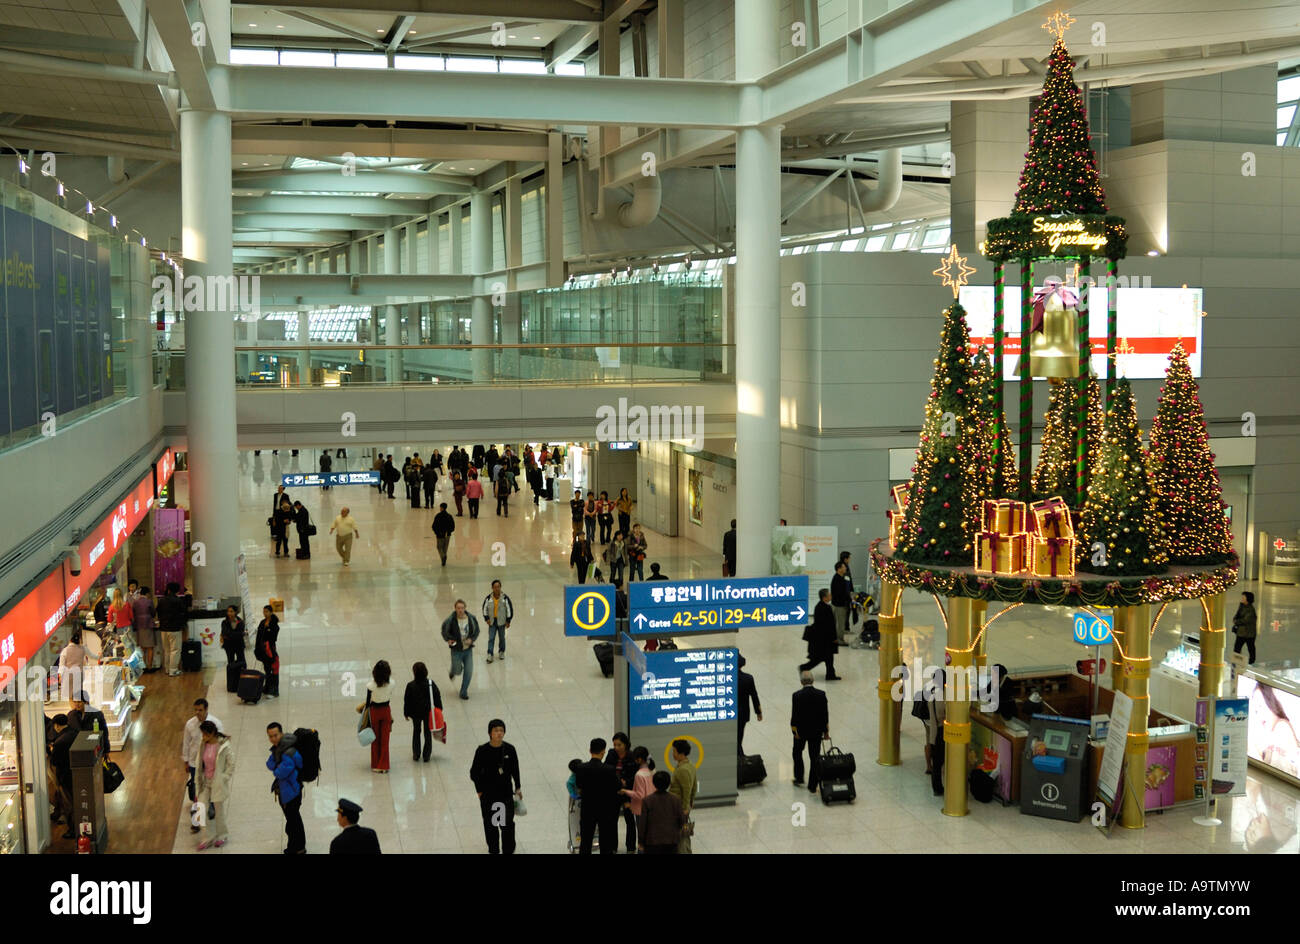 Seoul Incheon International Airport KR Stock Photo Royalty Free